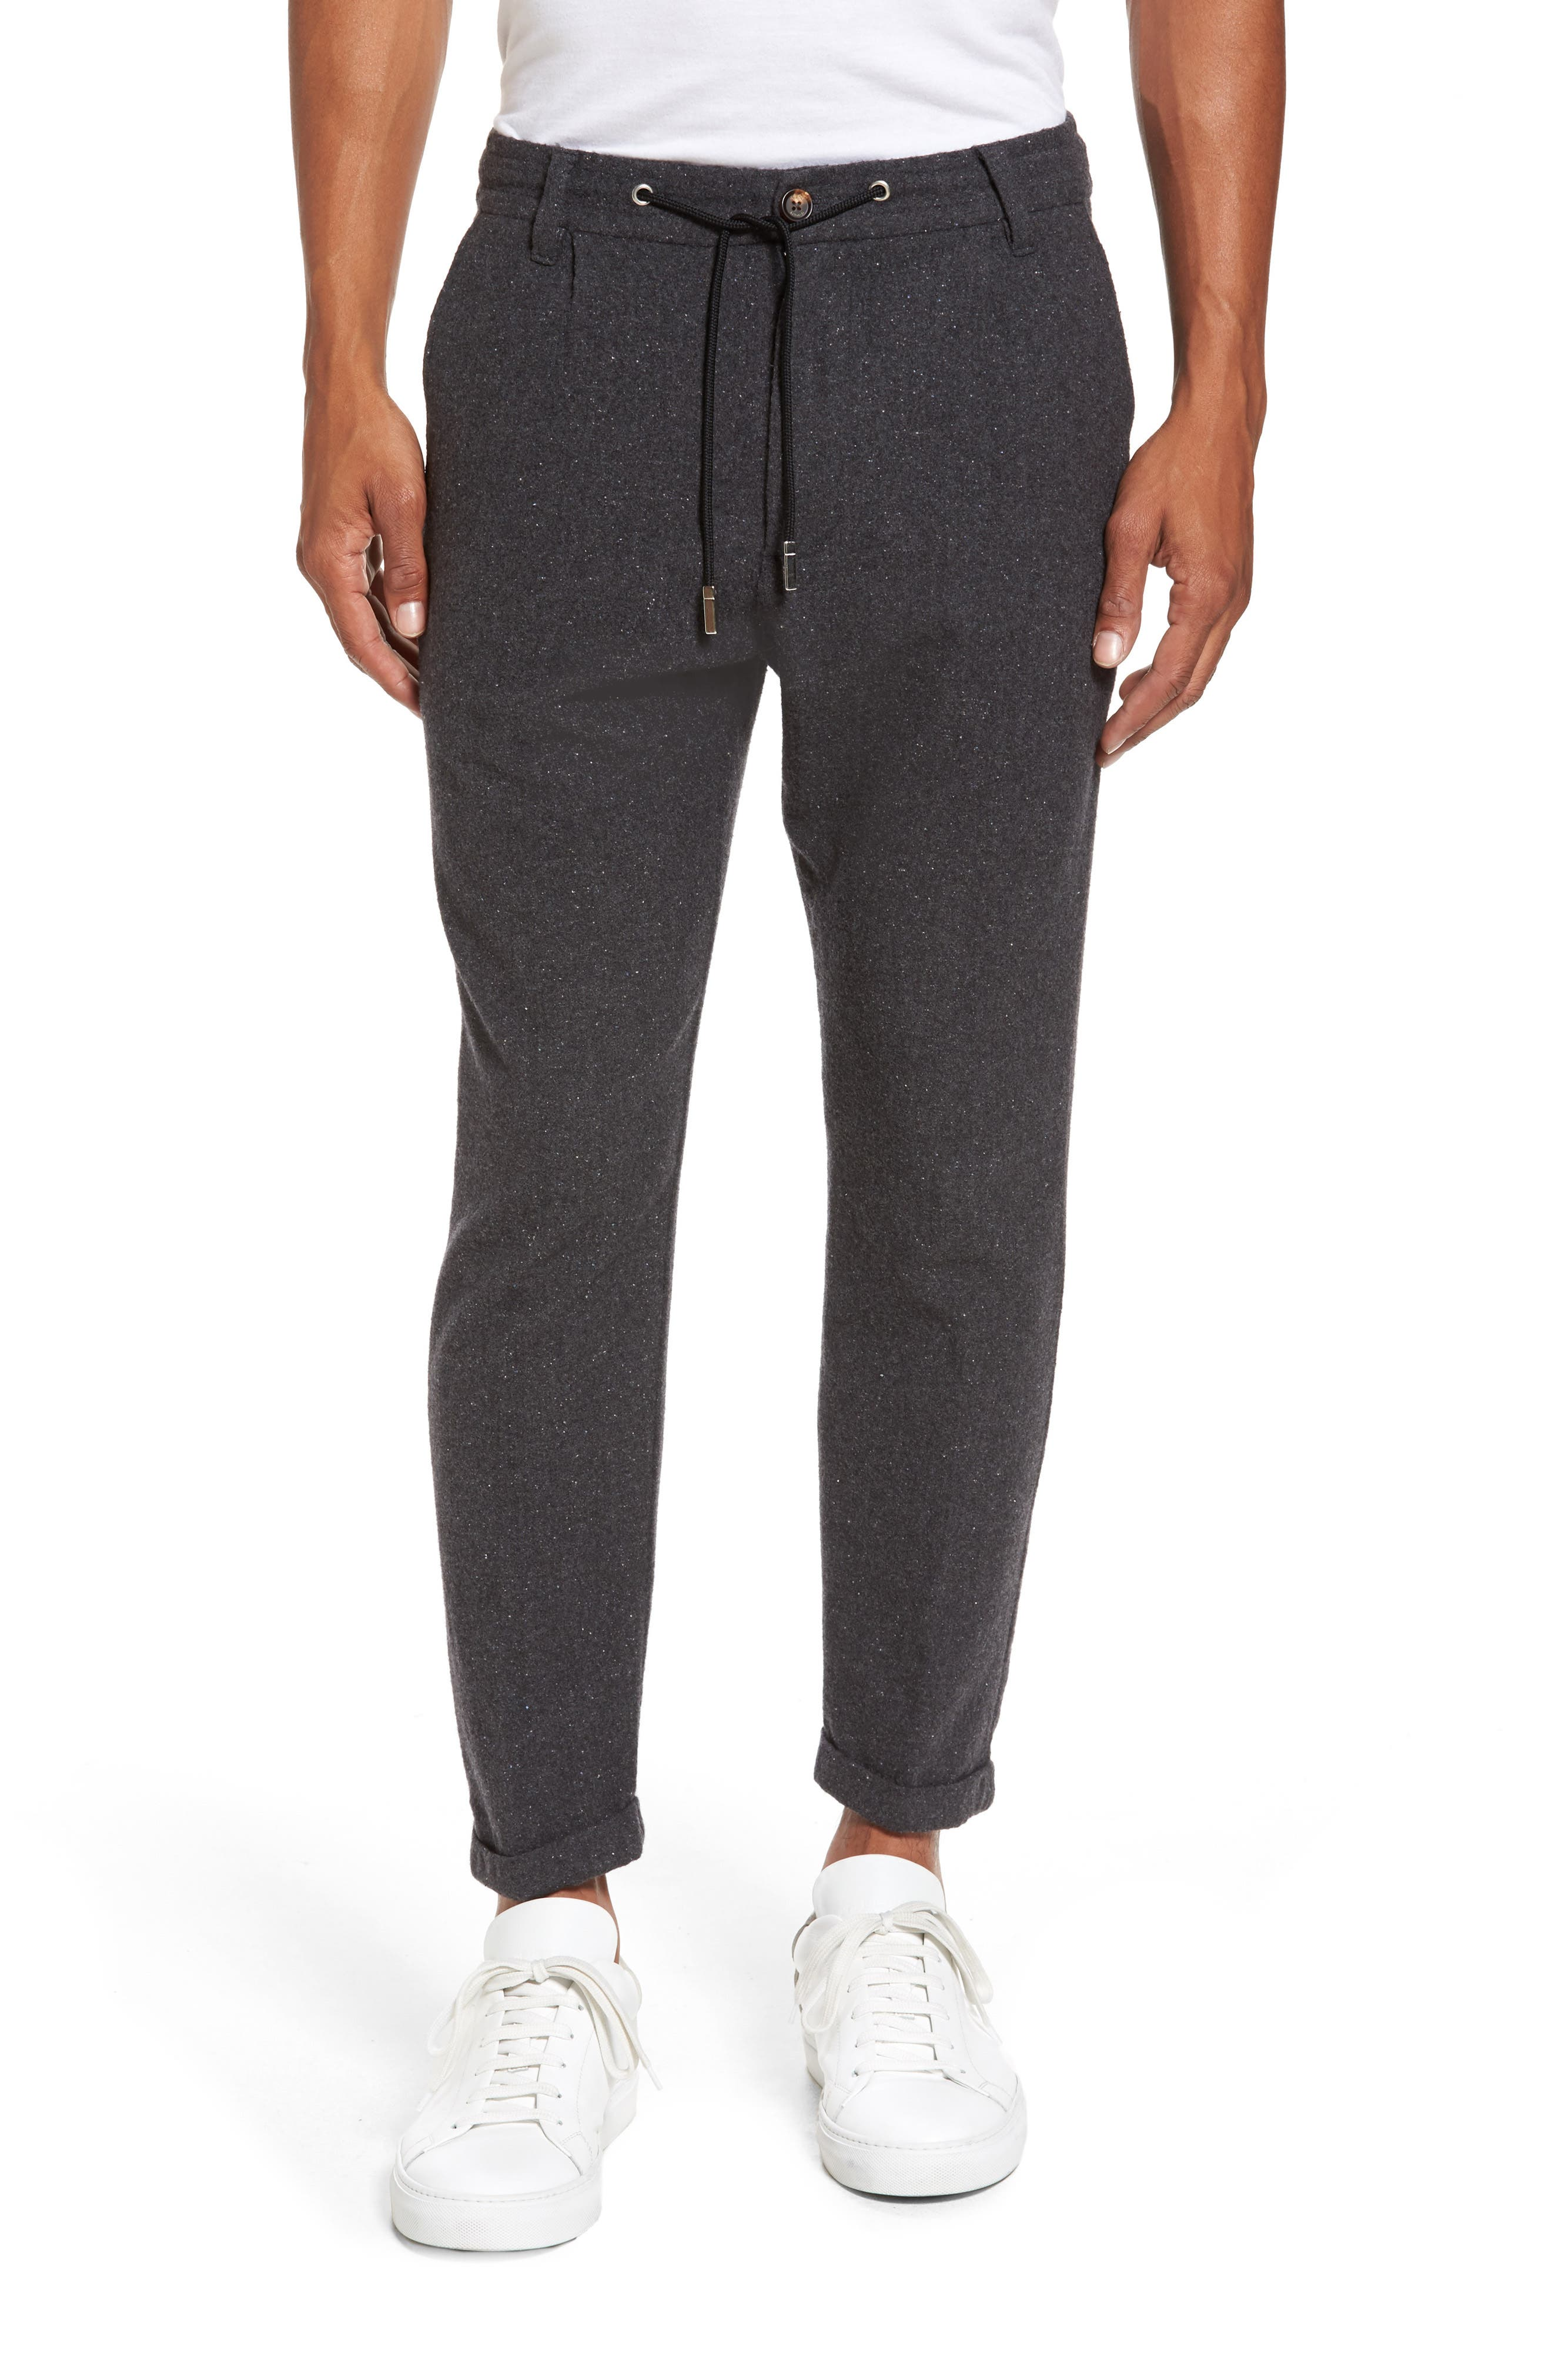 Donegal Stretch Wool Jogger Pants,                             Main thumbnail 1, color,                             020